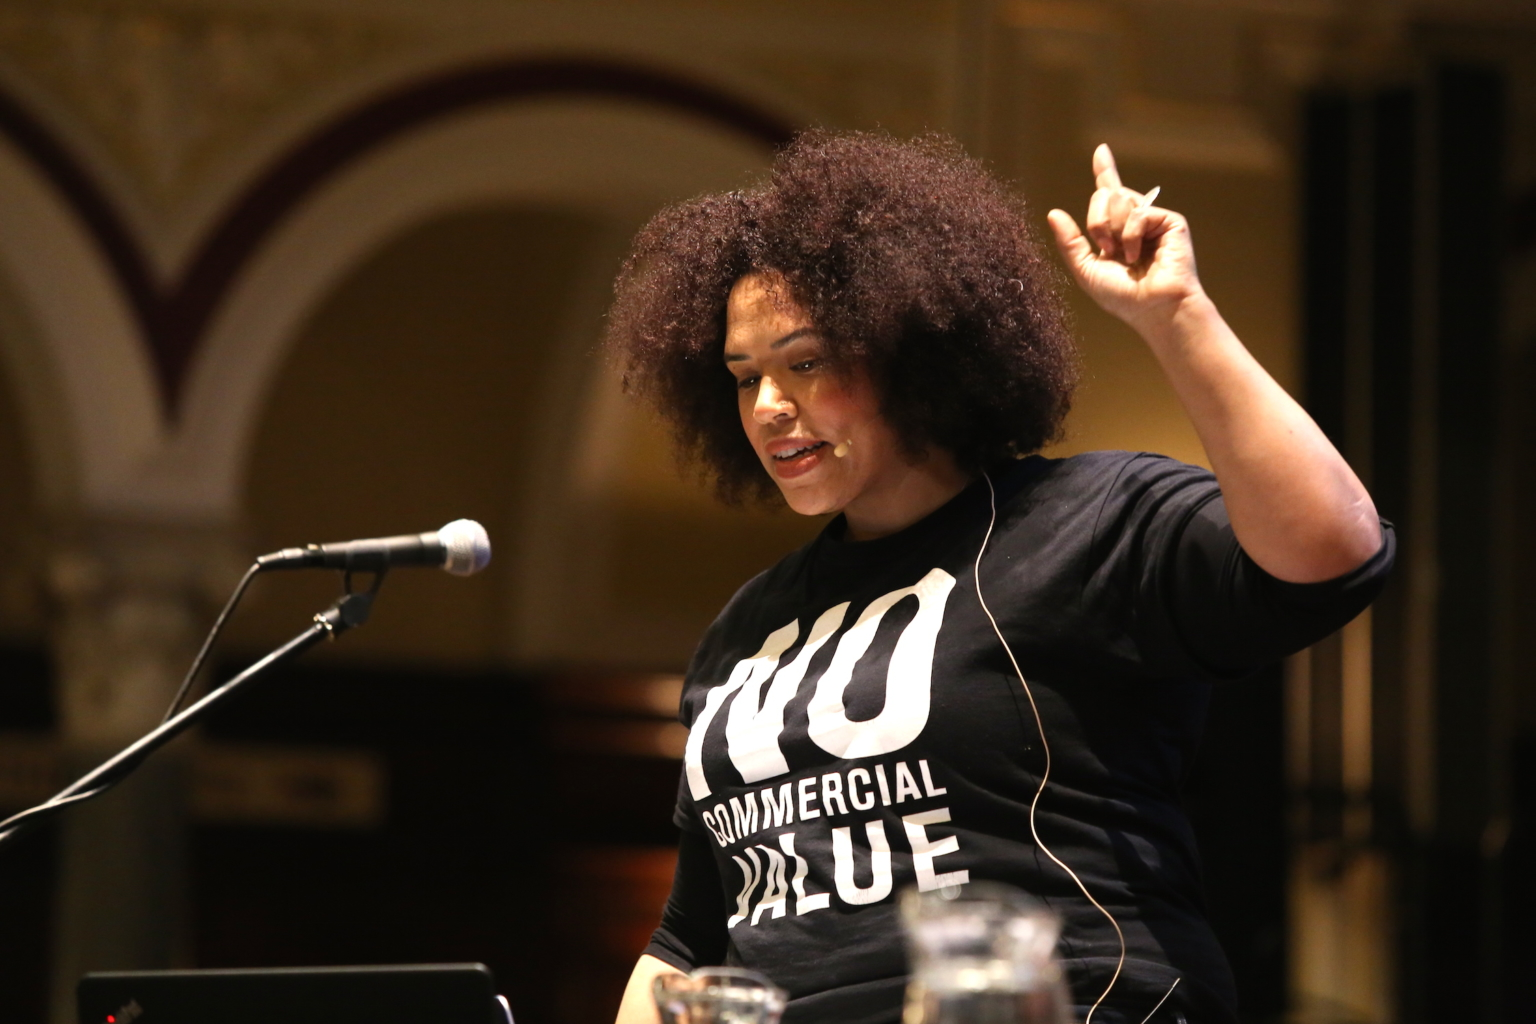 Rommi Smith speaking during Plenary 4, Engage Conference 2017 (The Whole Picture: Rethinking diversity), Hull City Hall, November 2017. Photo: Amy Charles, Courtesy: Engage